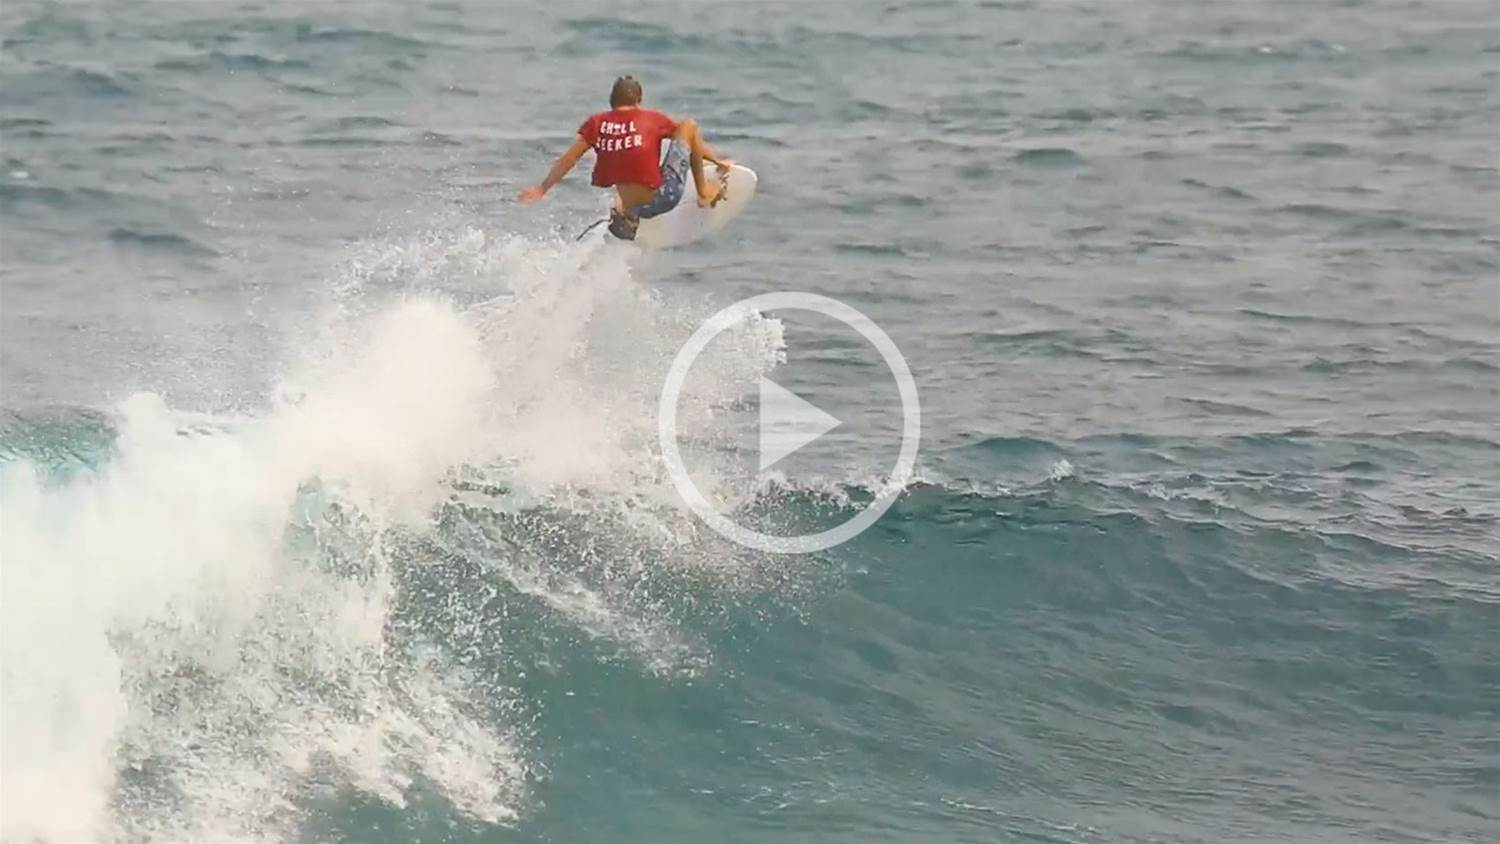 Maui Jump Ramps With Braiden Maither